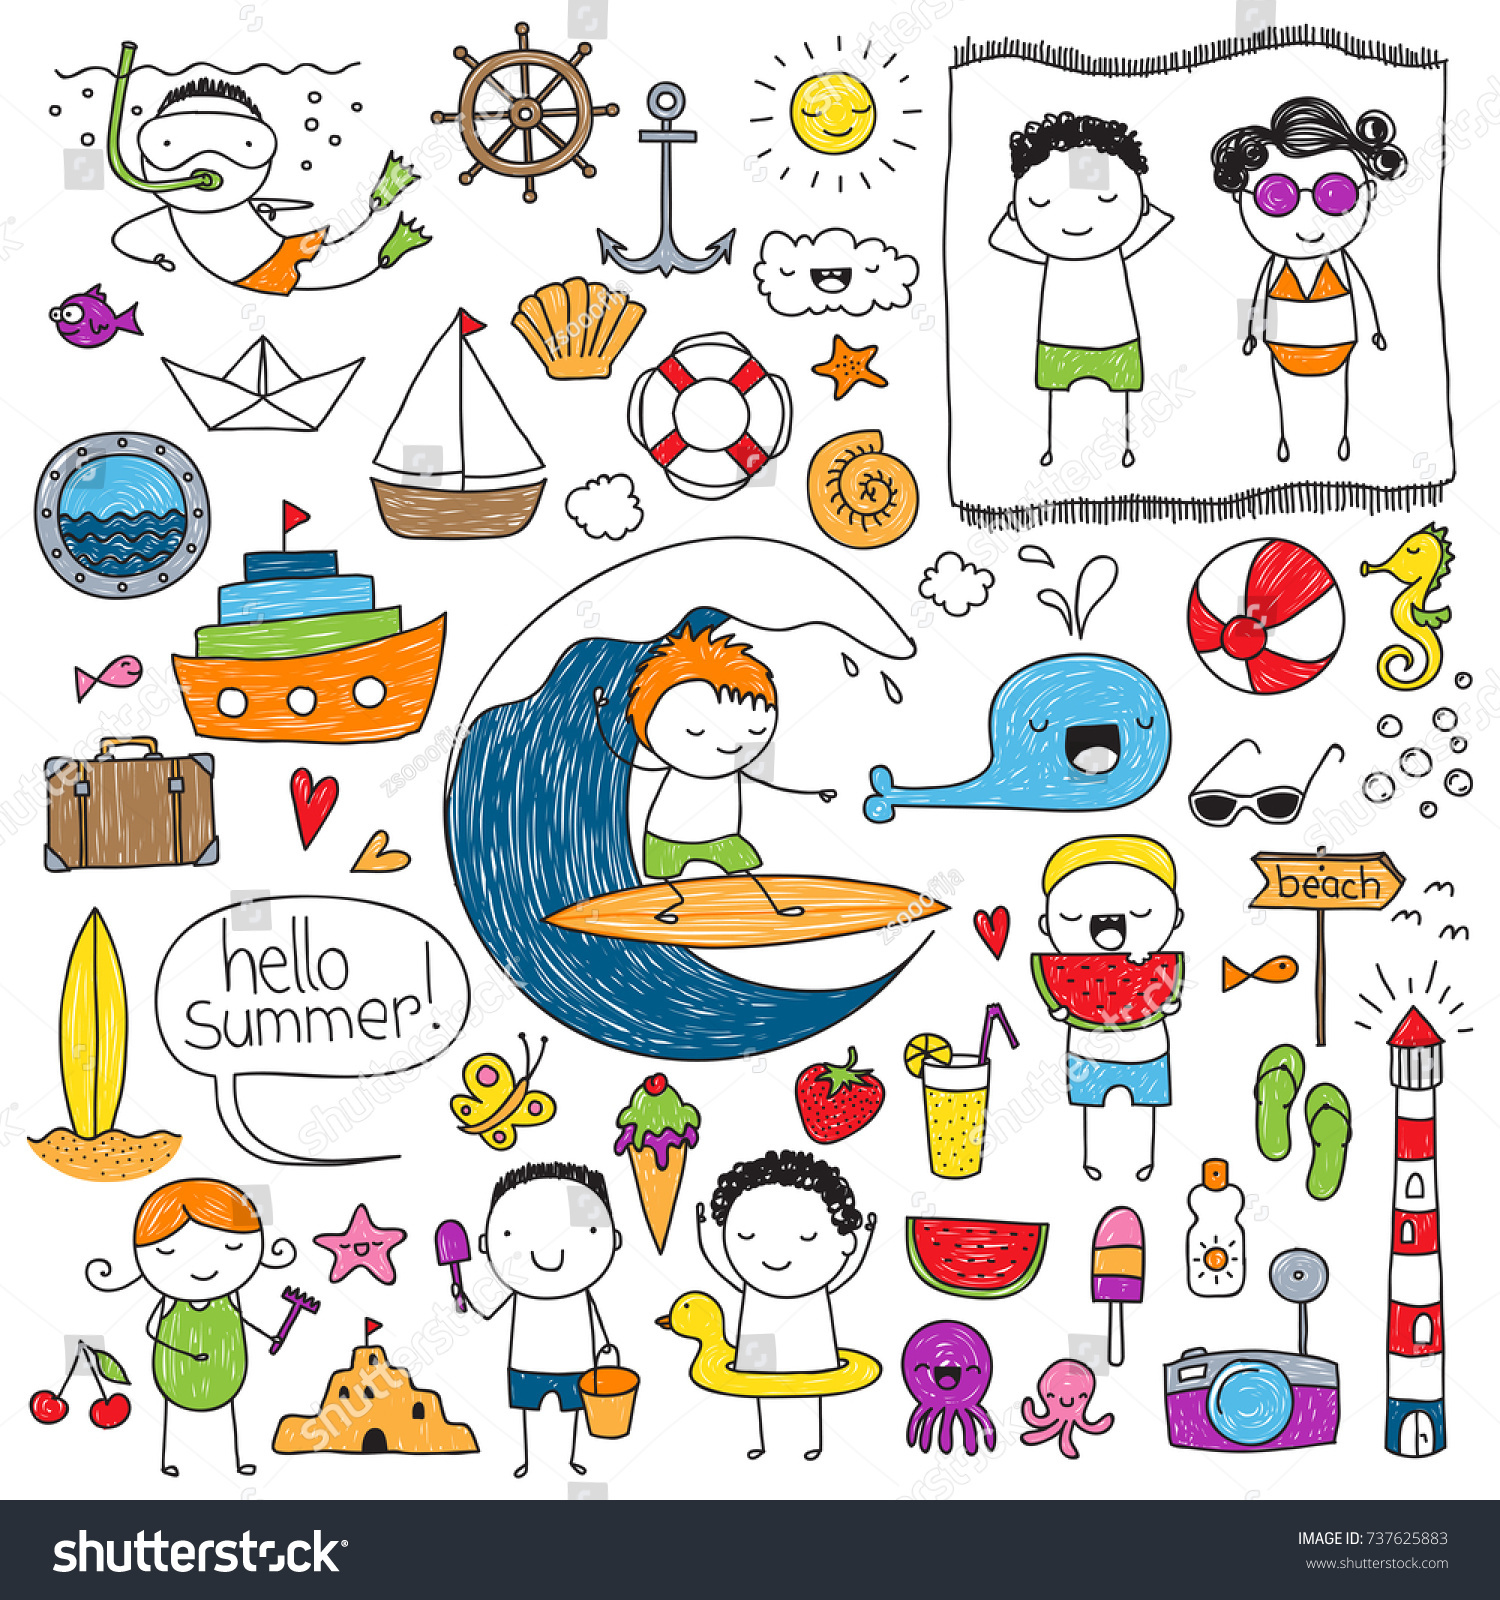 Uncategorized Drawings Of Summer collection cute childrens drawings summer related stock vector of things colored imperfectly